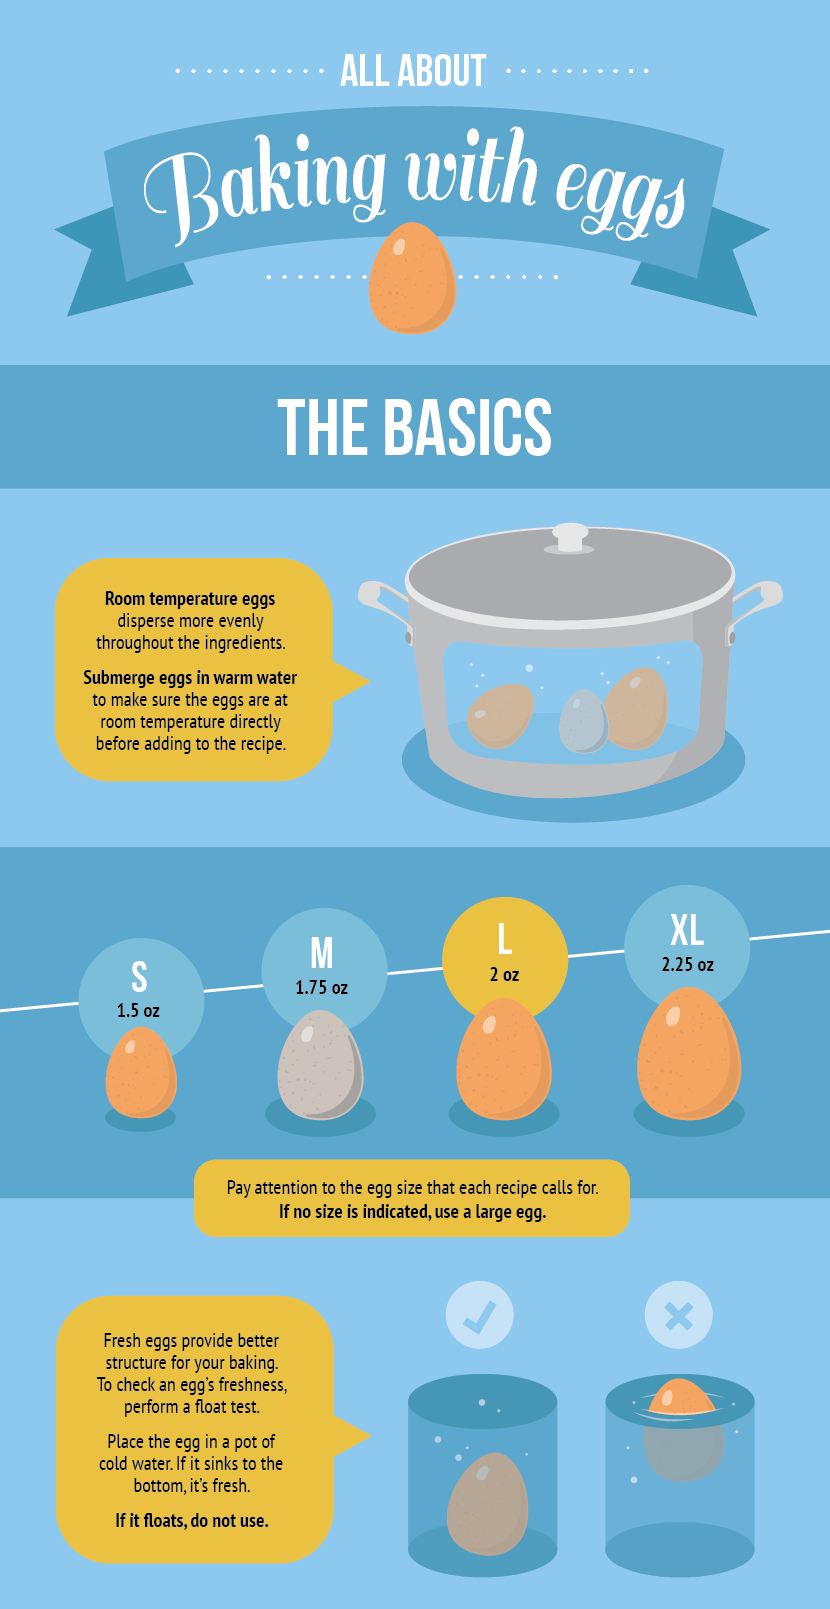 The Basics of Baking With Eggs - All About Baking with Eggs